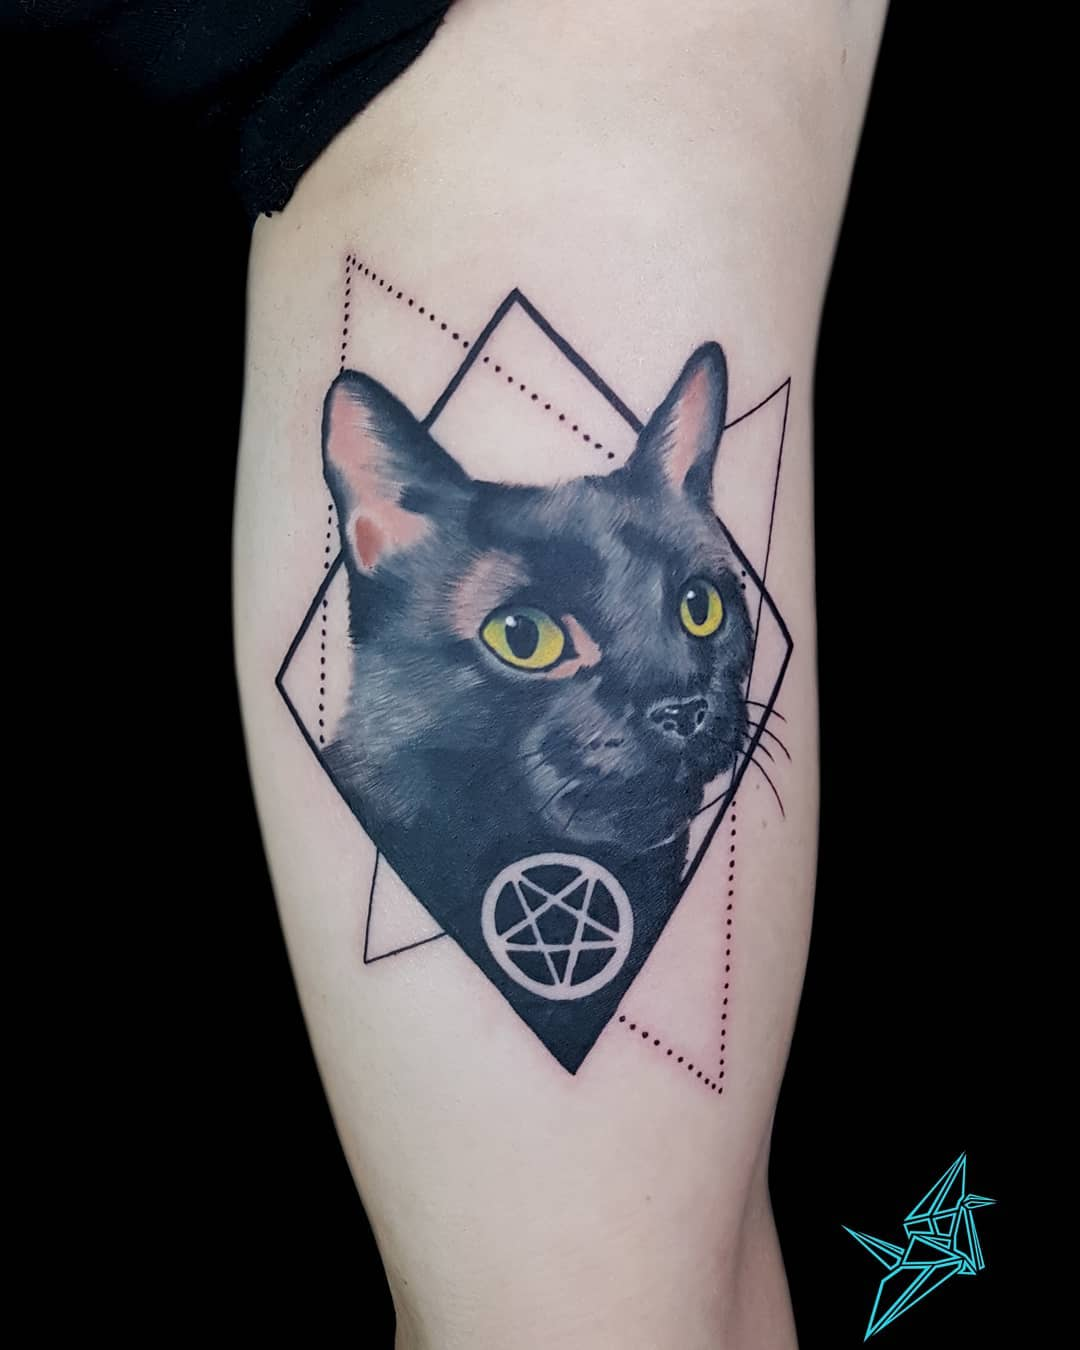 599e67920324c ... with a specific design of cat tattoo as their symbol of protest. A  symbol that could bring the power and good luck, they believe, with such  they would ...